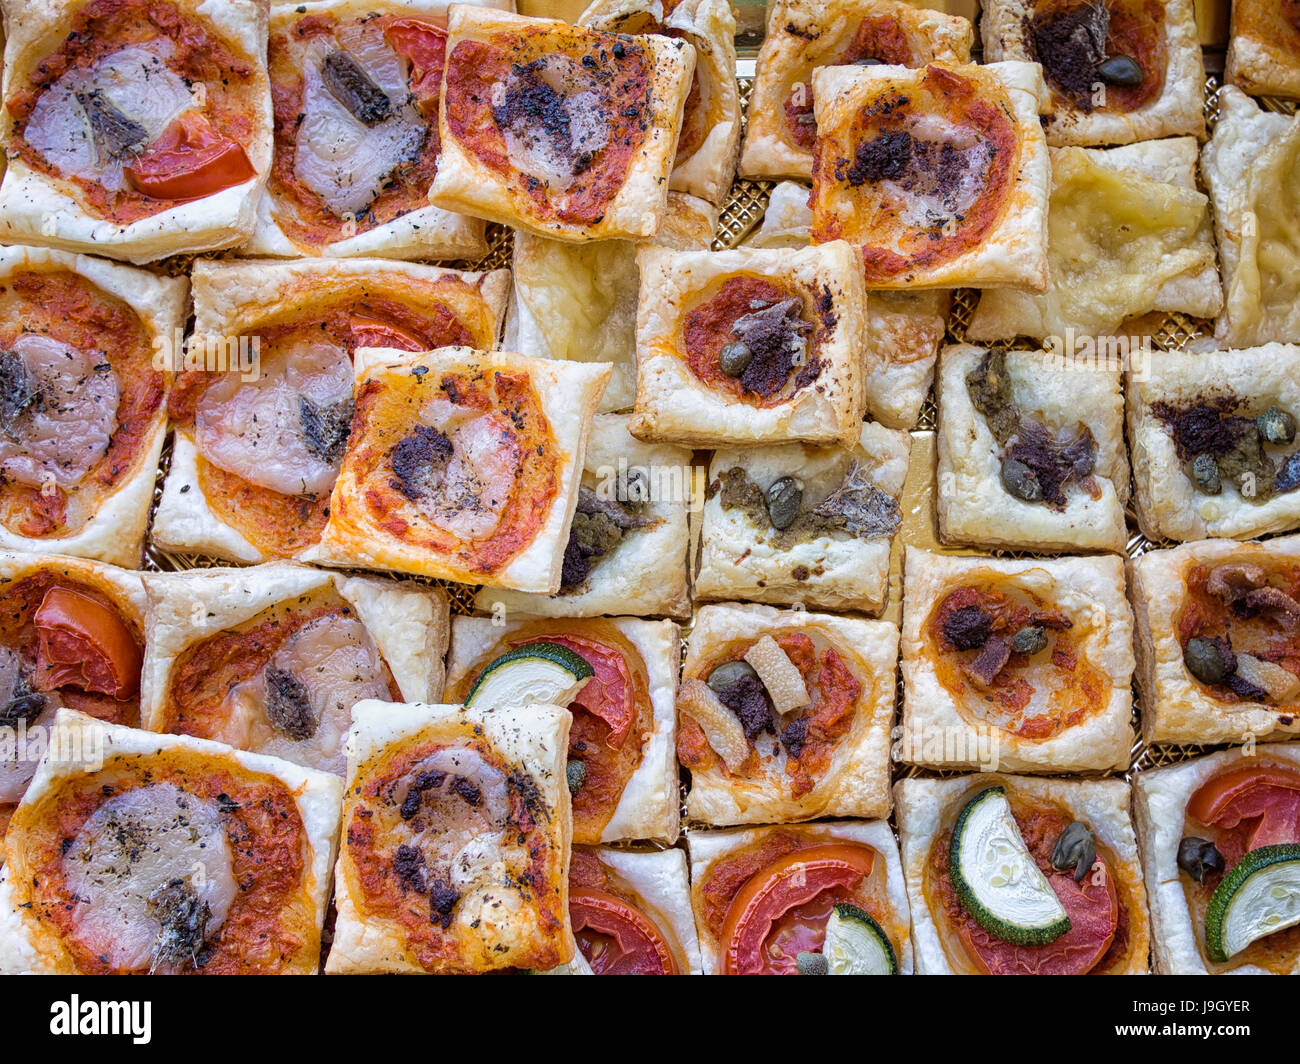 Italian aperitif. Flaky pastry bites with pizza style toppings. - Stock Image